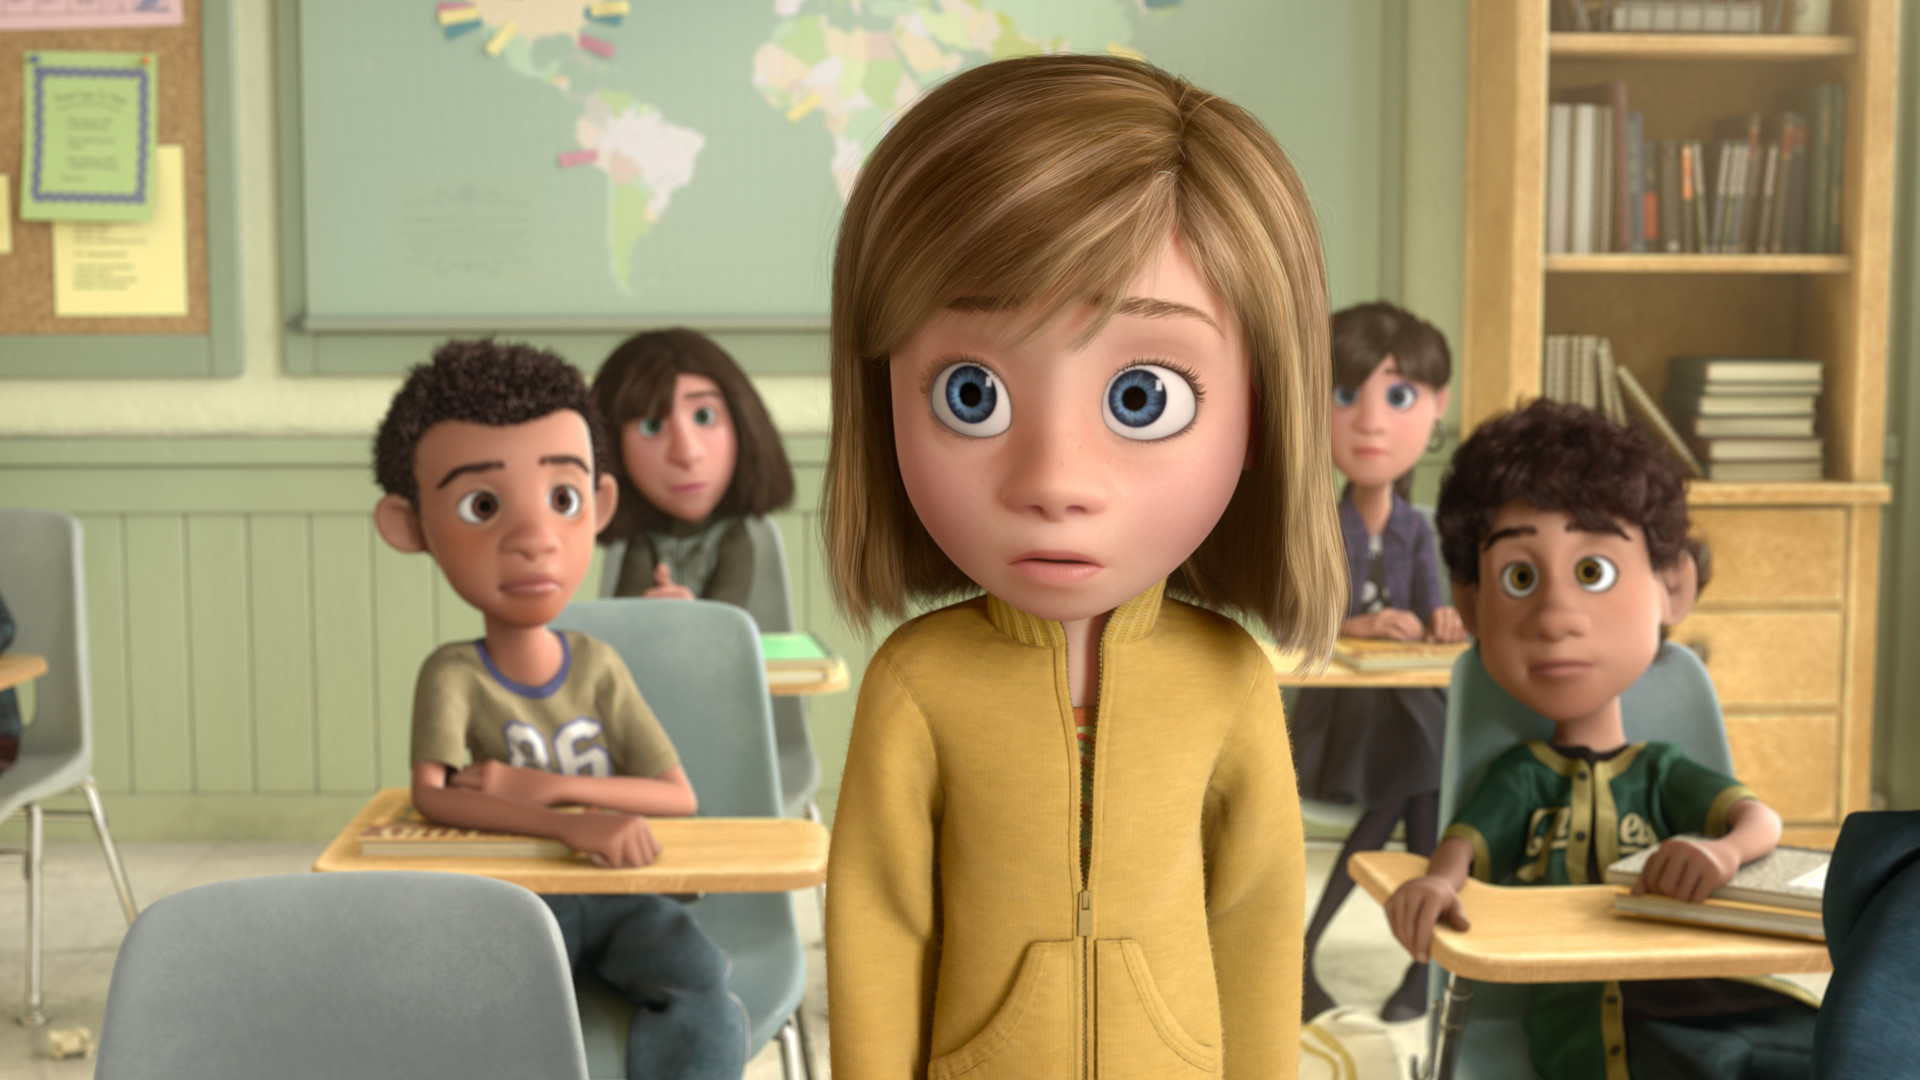 Riley Anderson (voiced by Kaitlyn Dias) depressed at the move to a new town in Inside Out (2015)